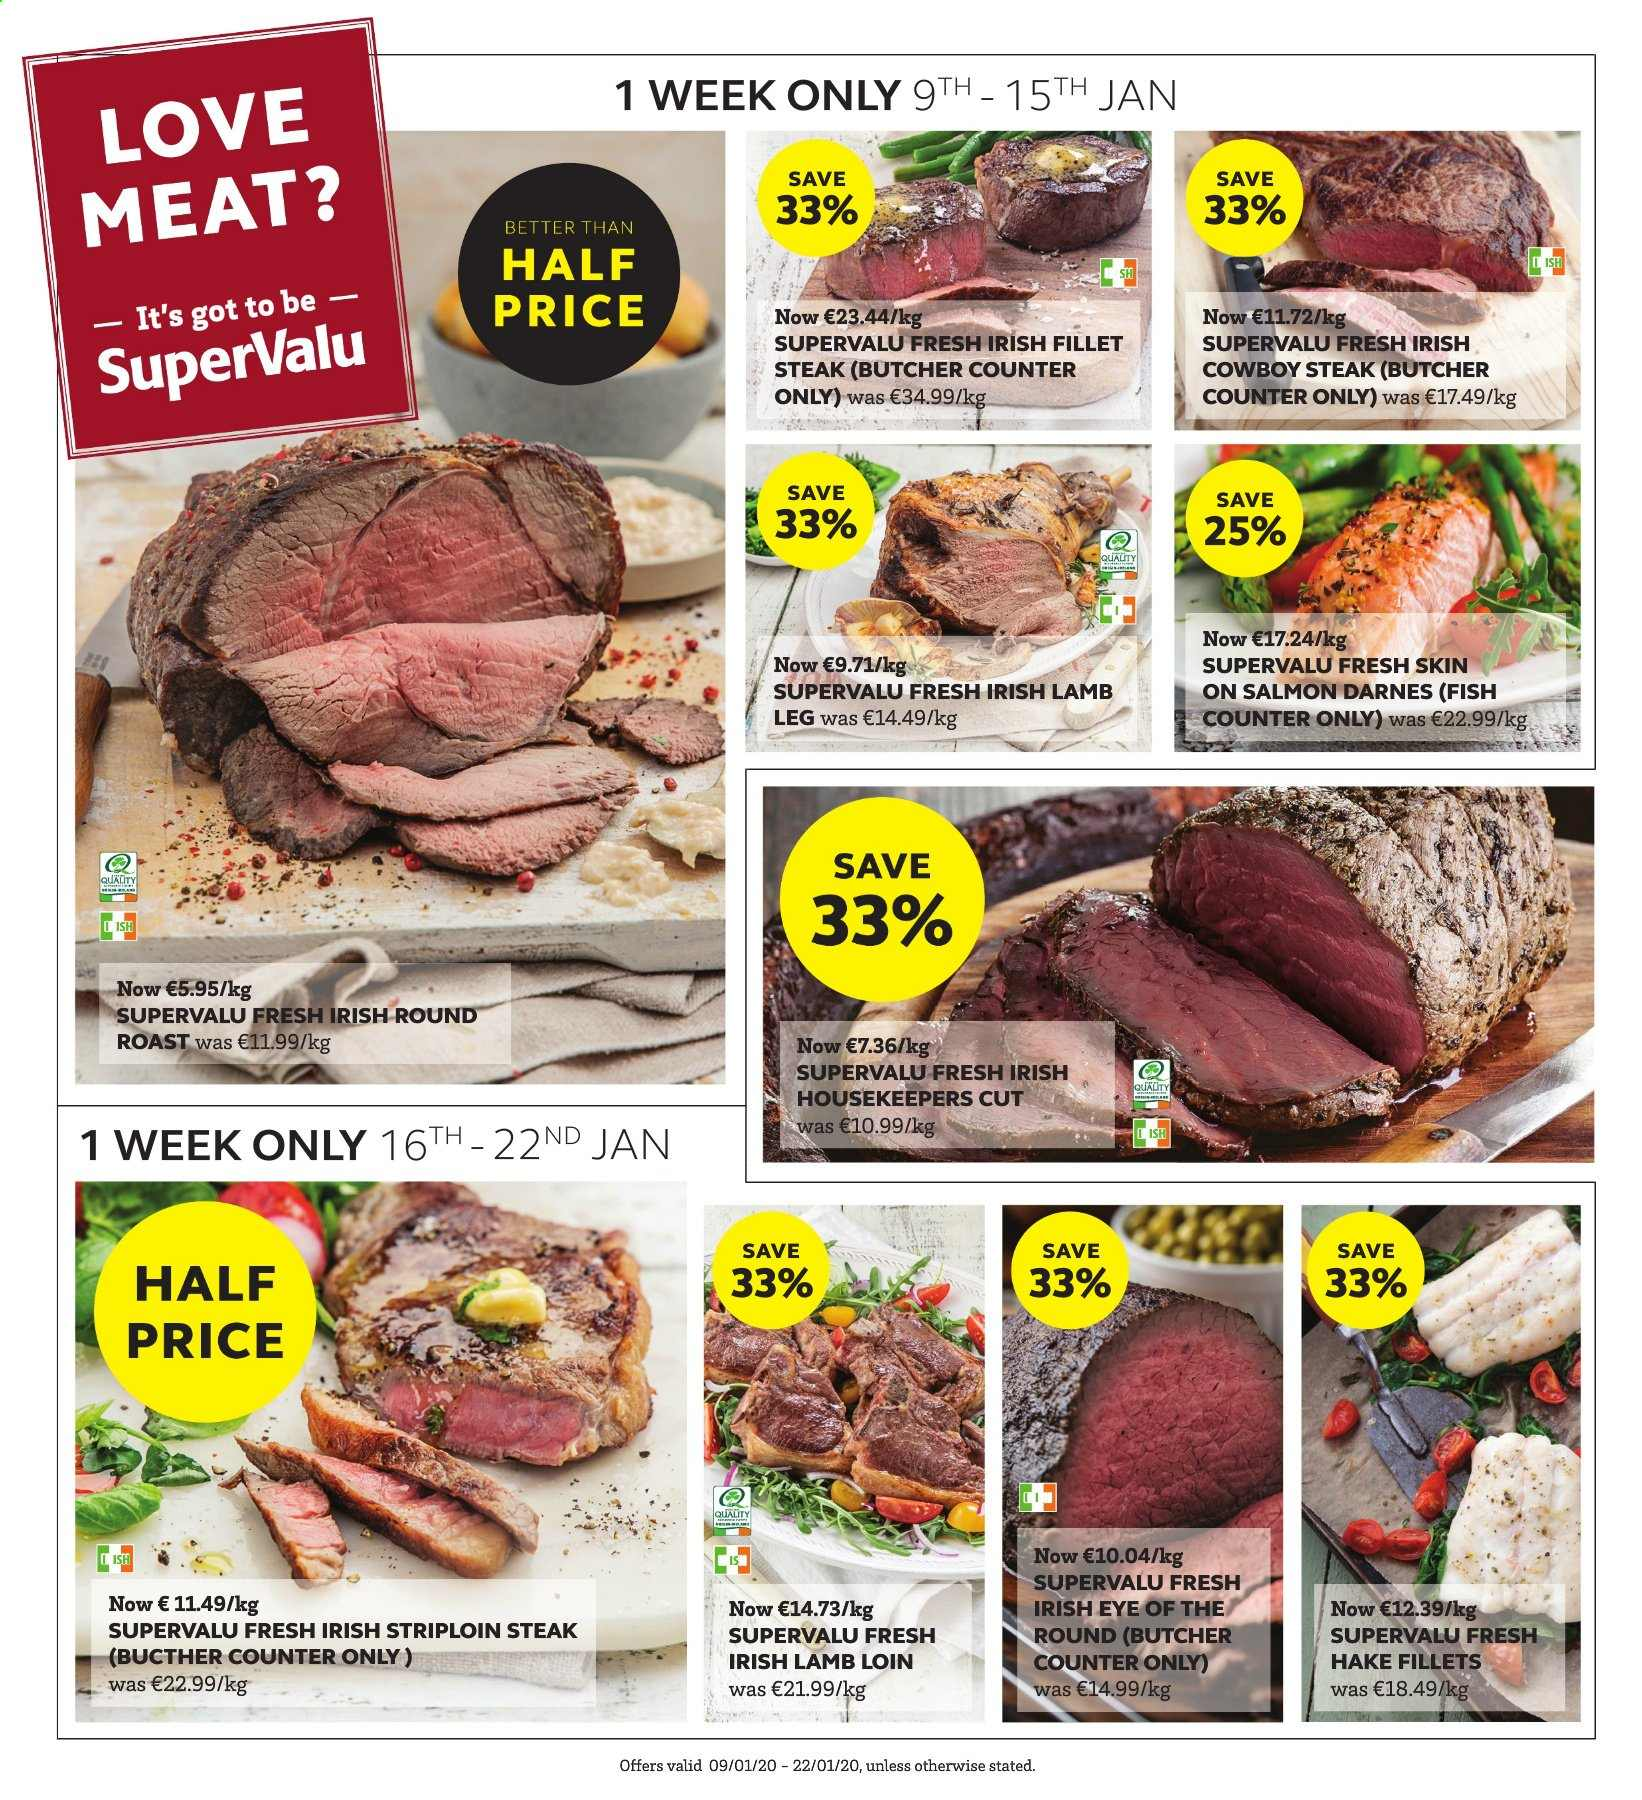 SuperValu offer  - 9.1.2020 - 22.1.2020 - Sales products - salmon, hake, fish, steak, round roast, striploin steak, lamb loin, lamb meat, lamb leg. Page 24.